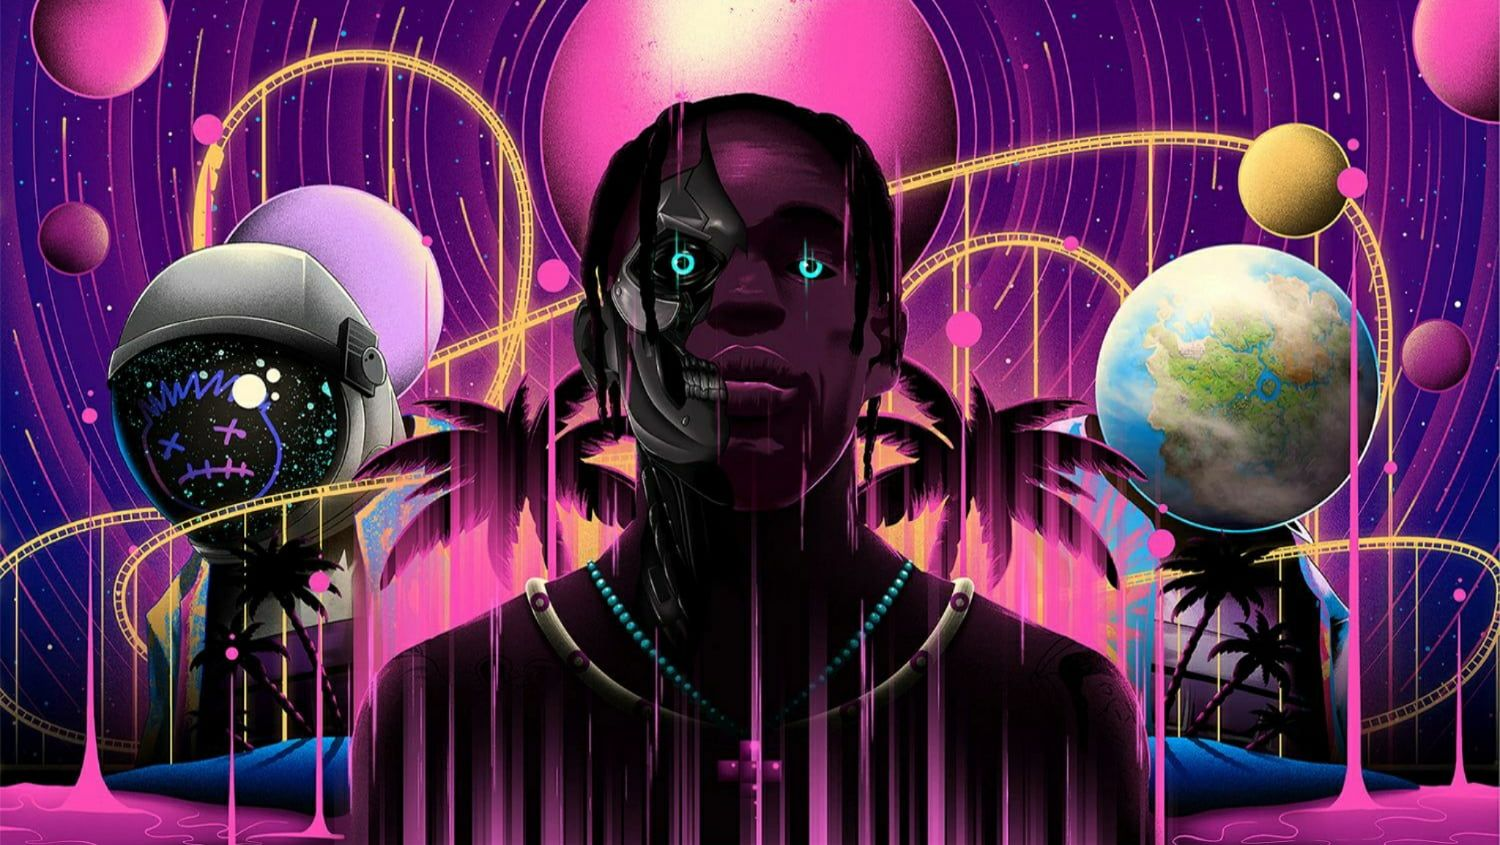 Fortnite Travis Scott 720p Wallpaper Hdwallpaper Desktop In 2020 Travis Scott Wallpapers Travis Scott Fortnite